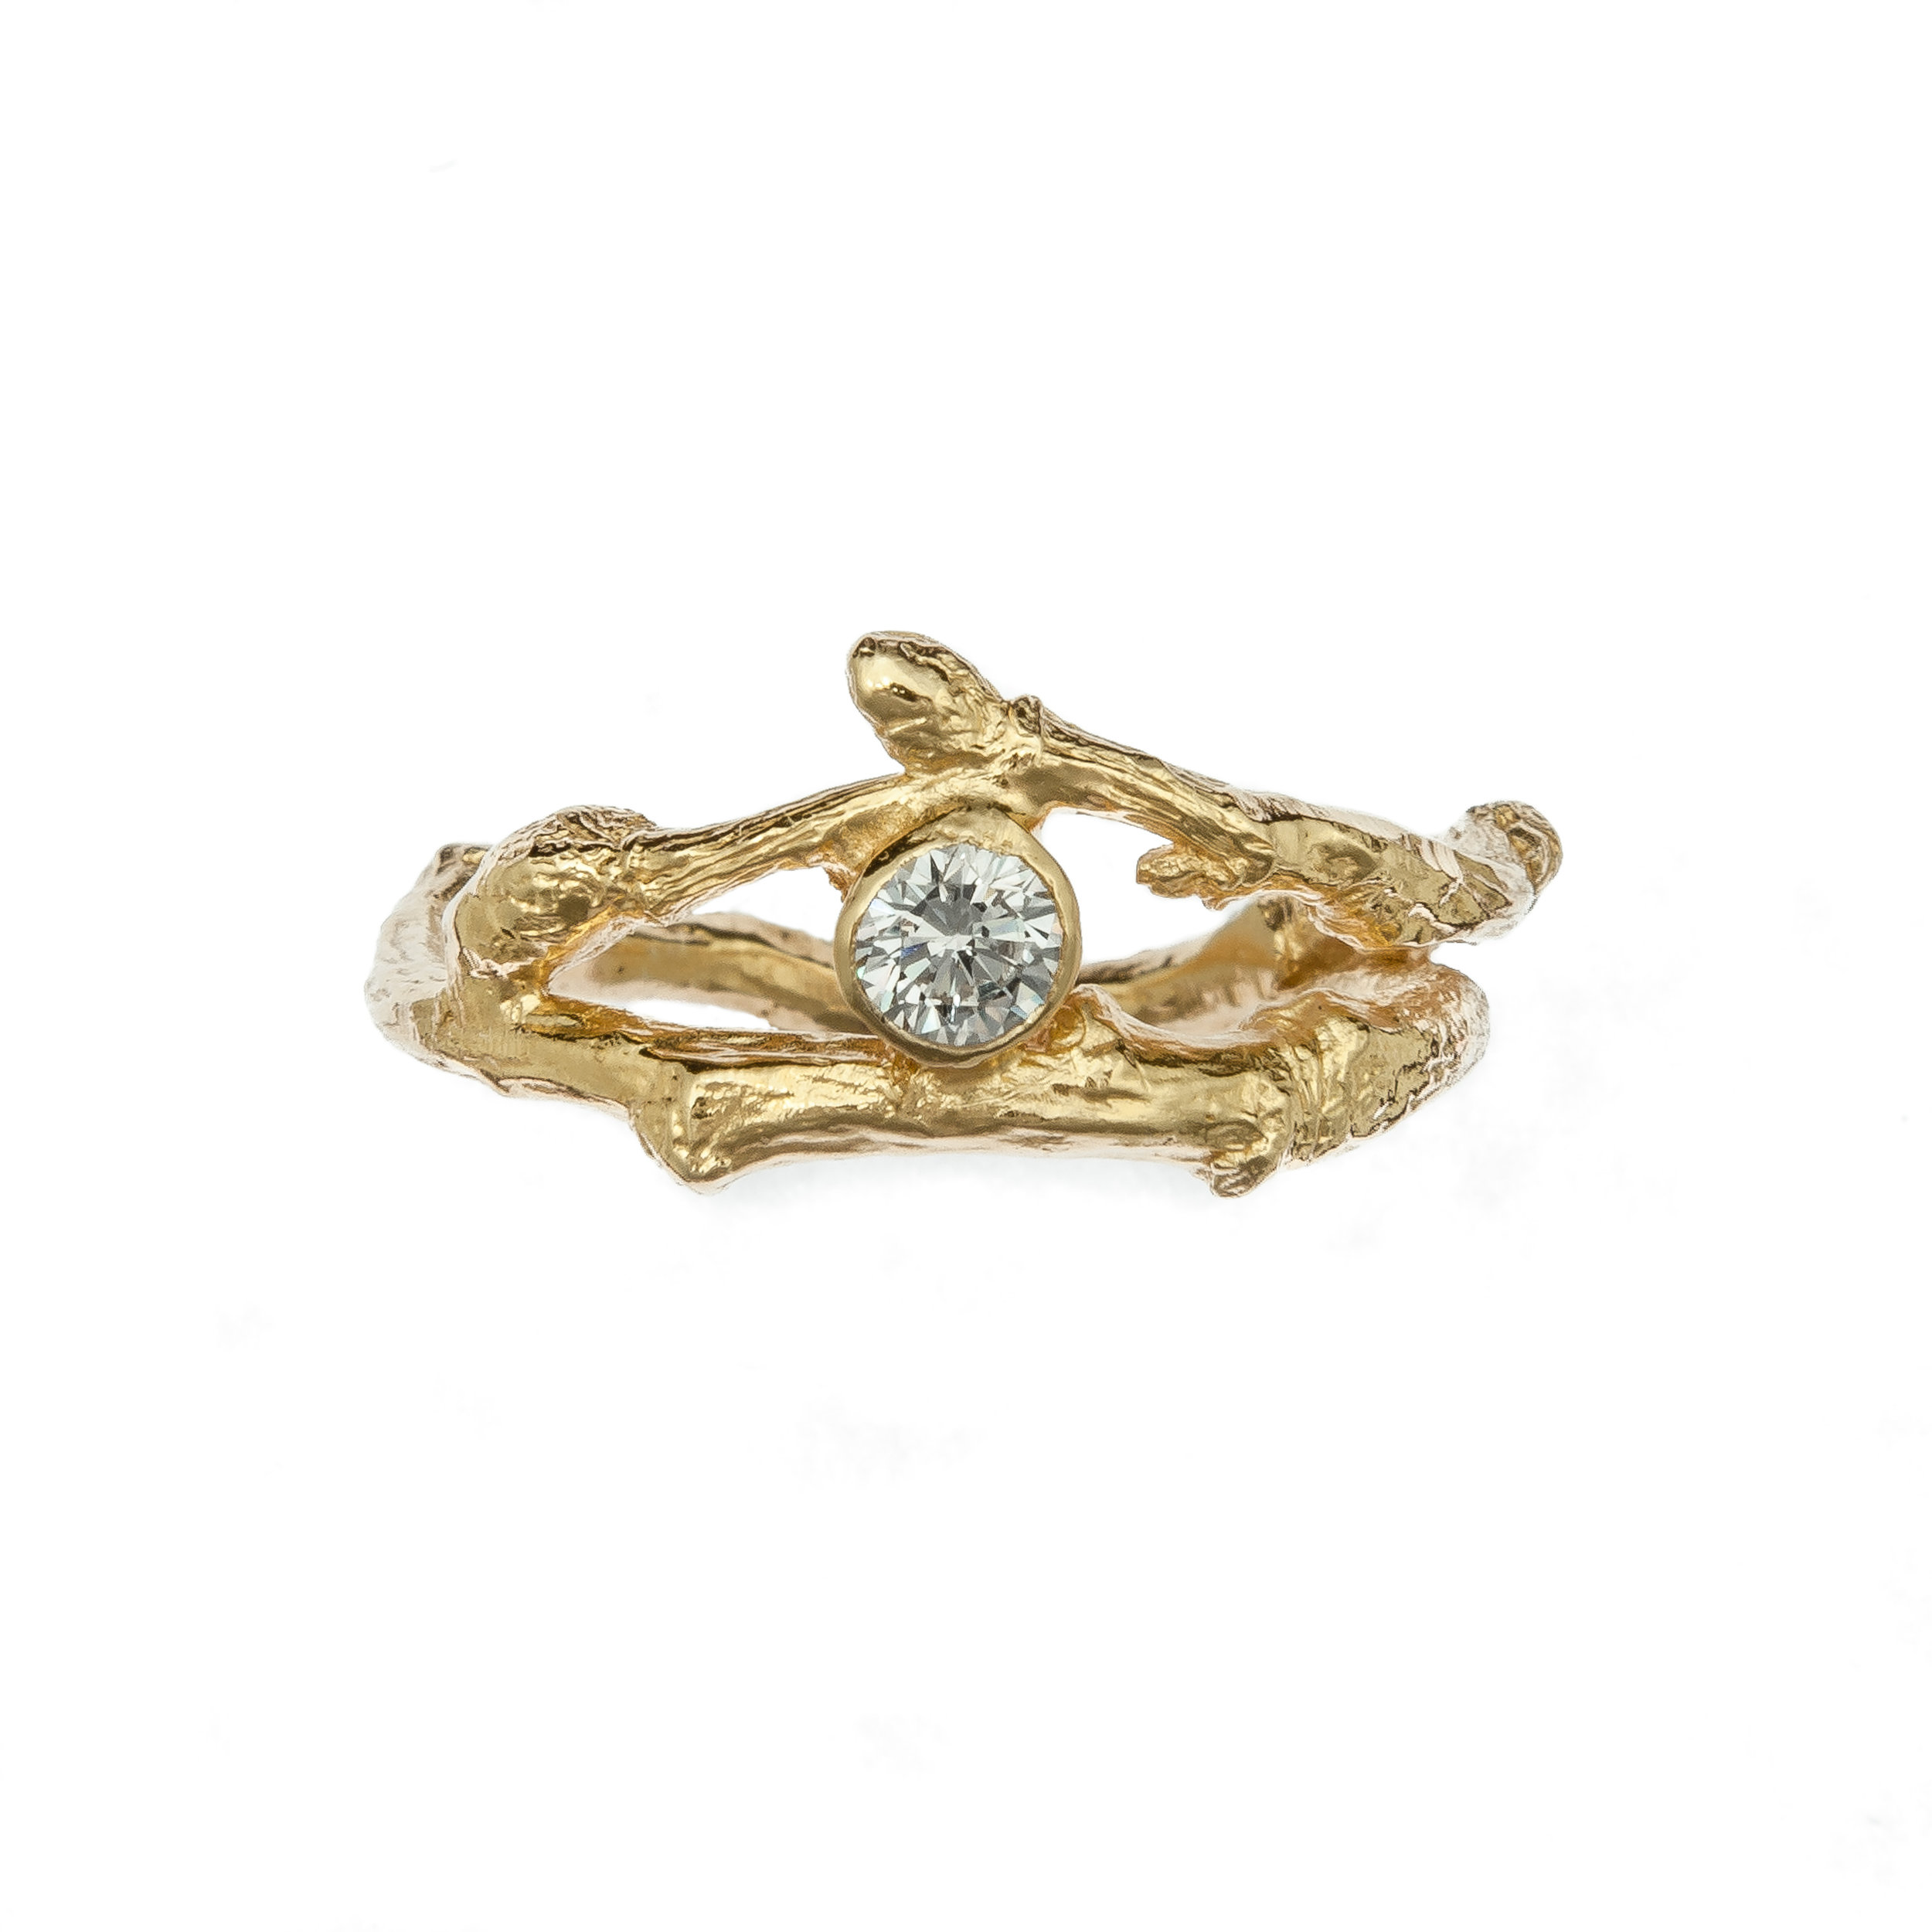 18ct gold budded twig and diamond ring, £2200